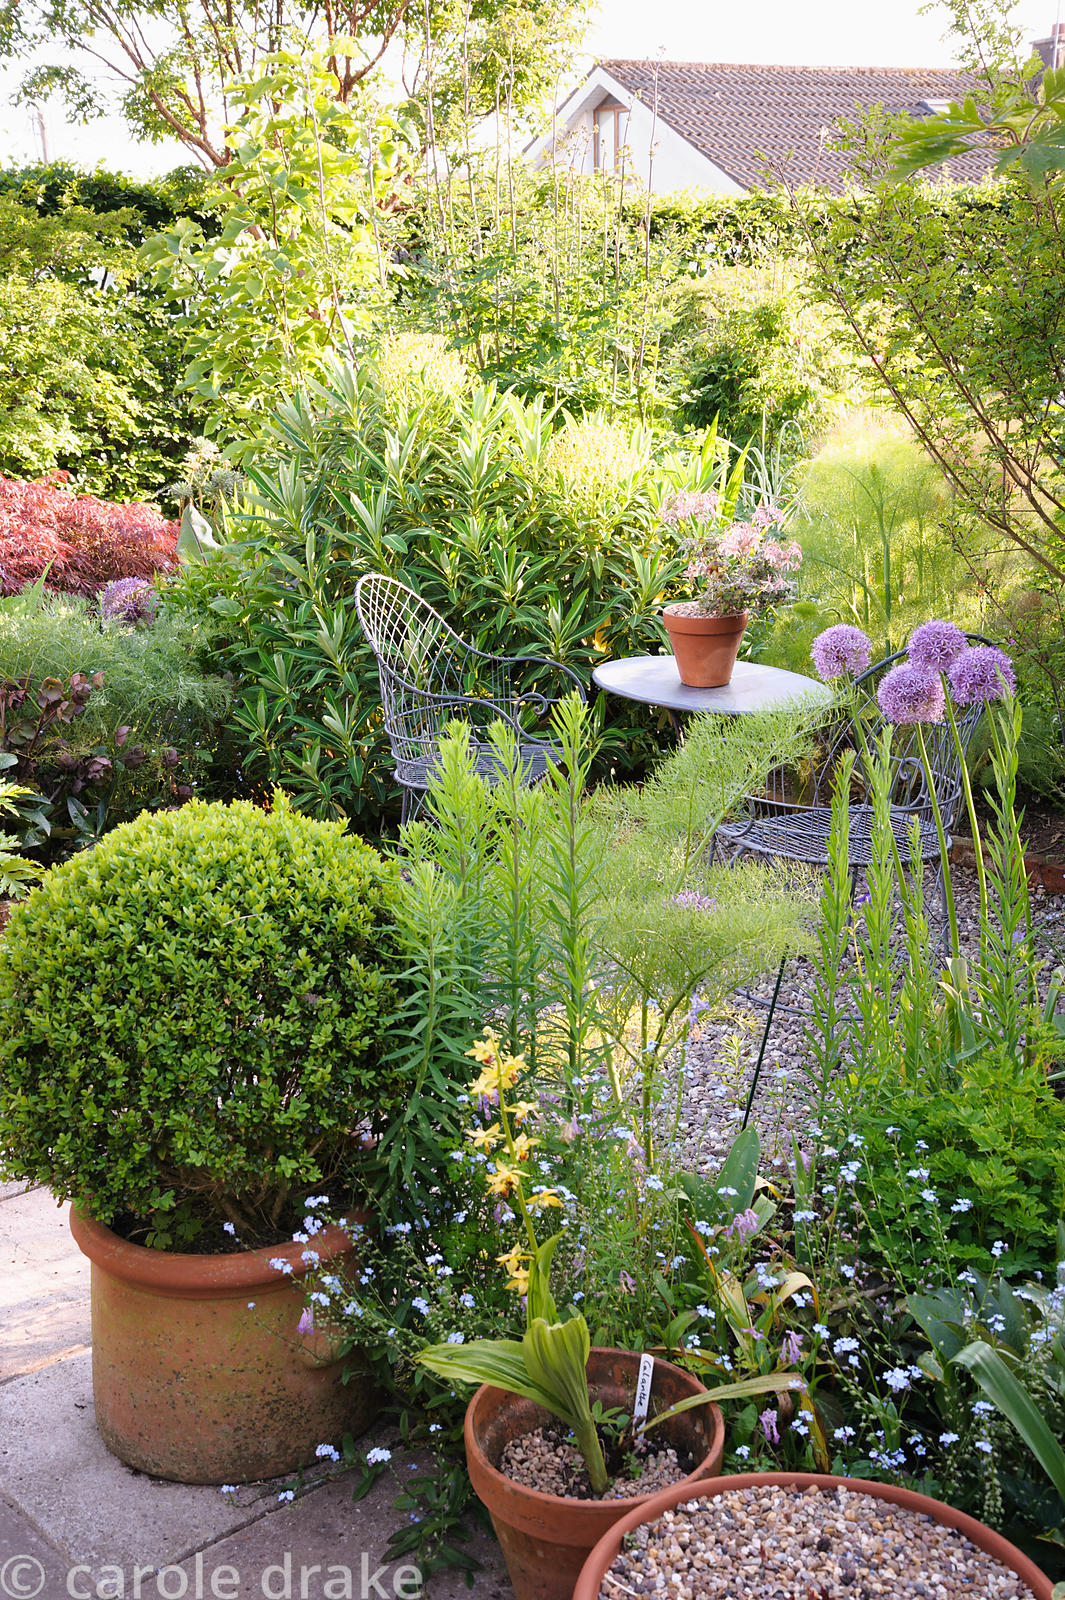 Seating area in the back garden surrounded by euphorbia, fennel and purple alliums plus pots of clipped box and orchids.